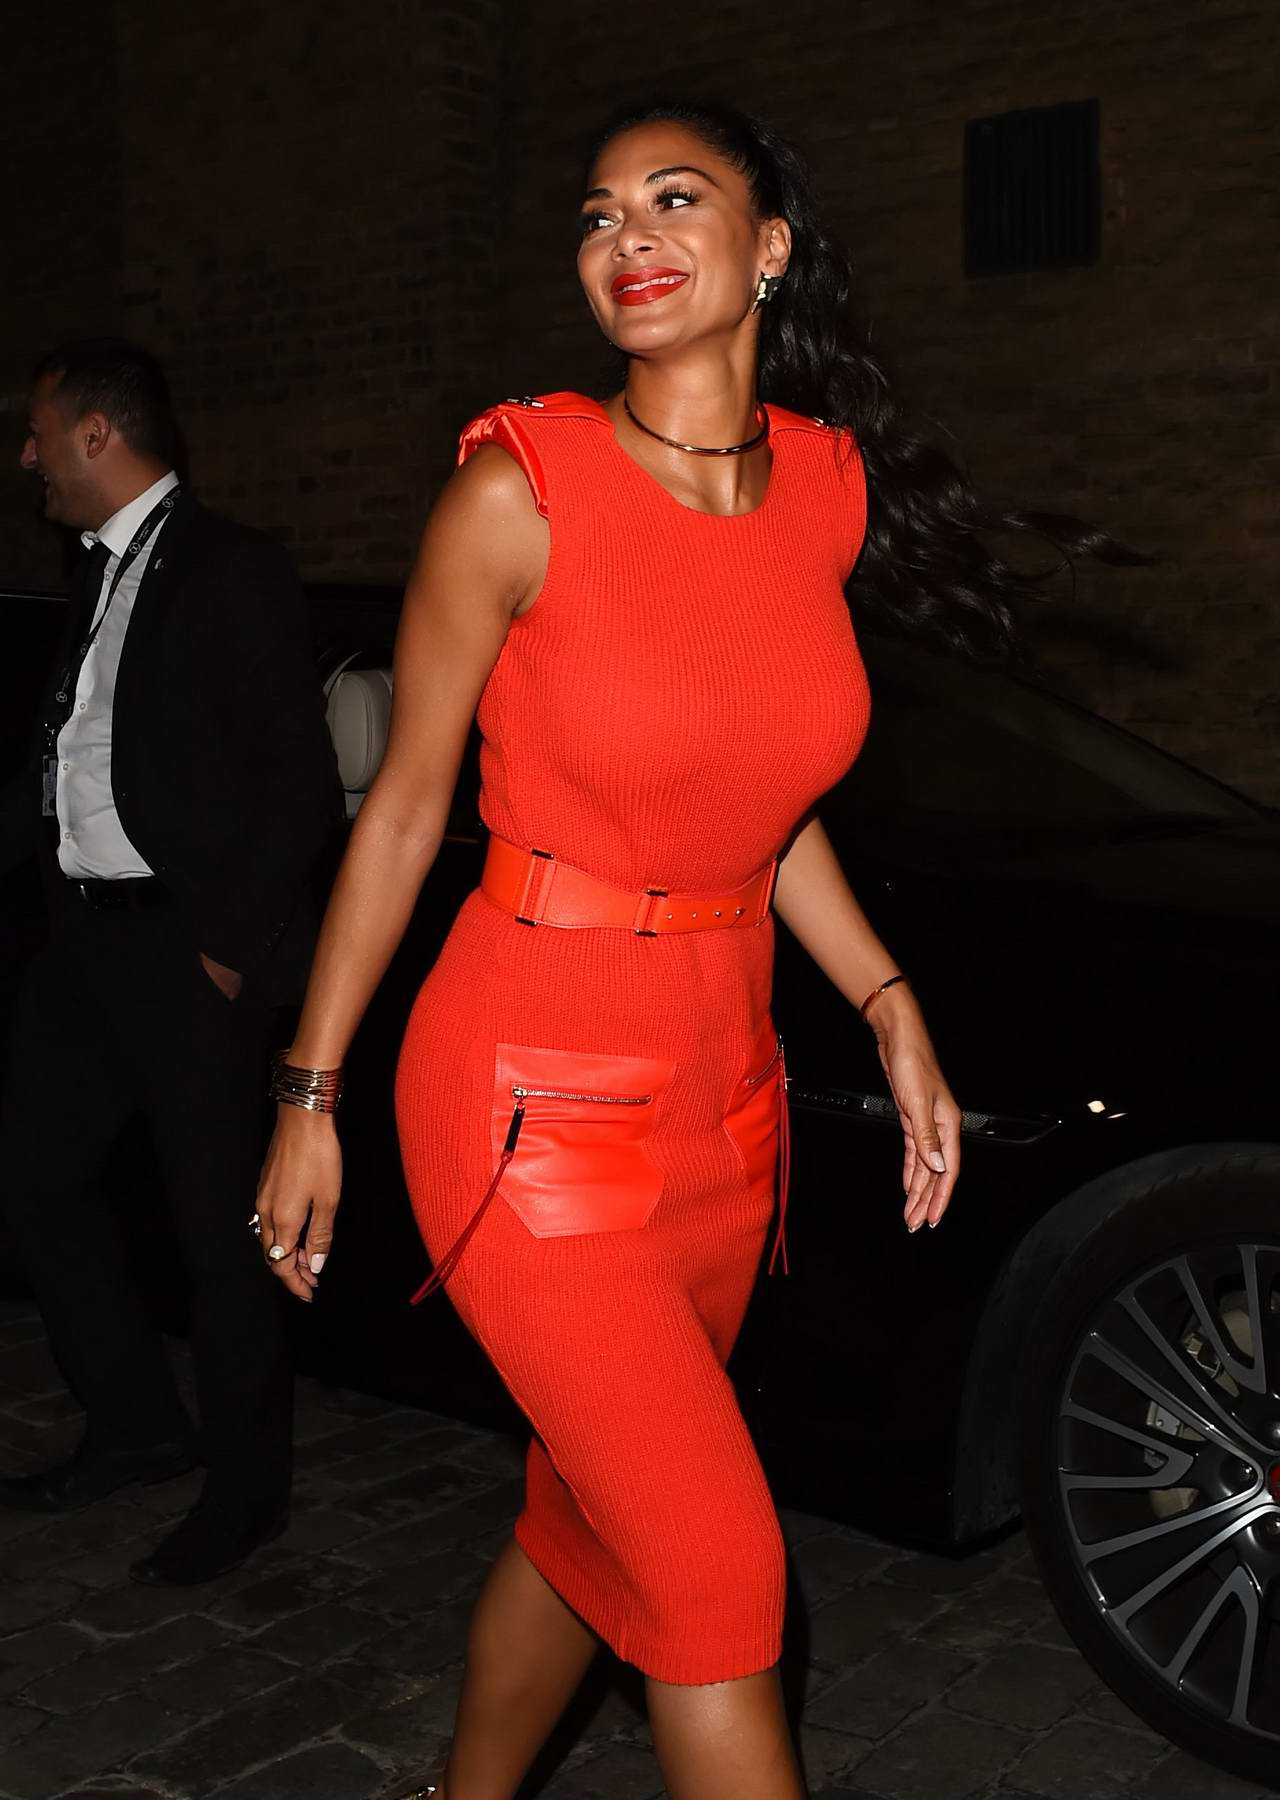 Nicole Scherzinger in a Bright Red Dress leaving the X Factor Auditions in London